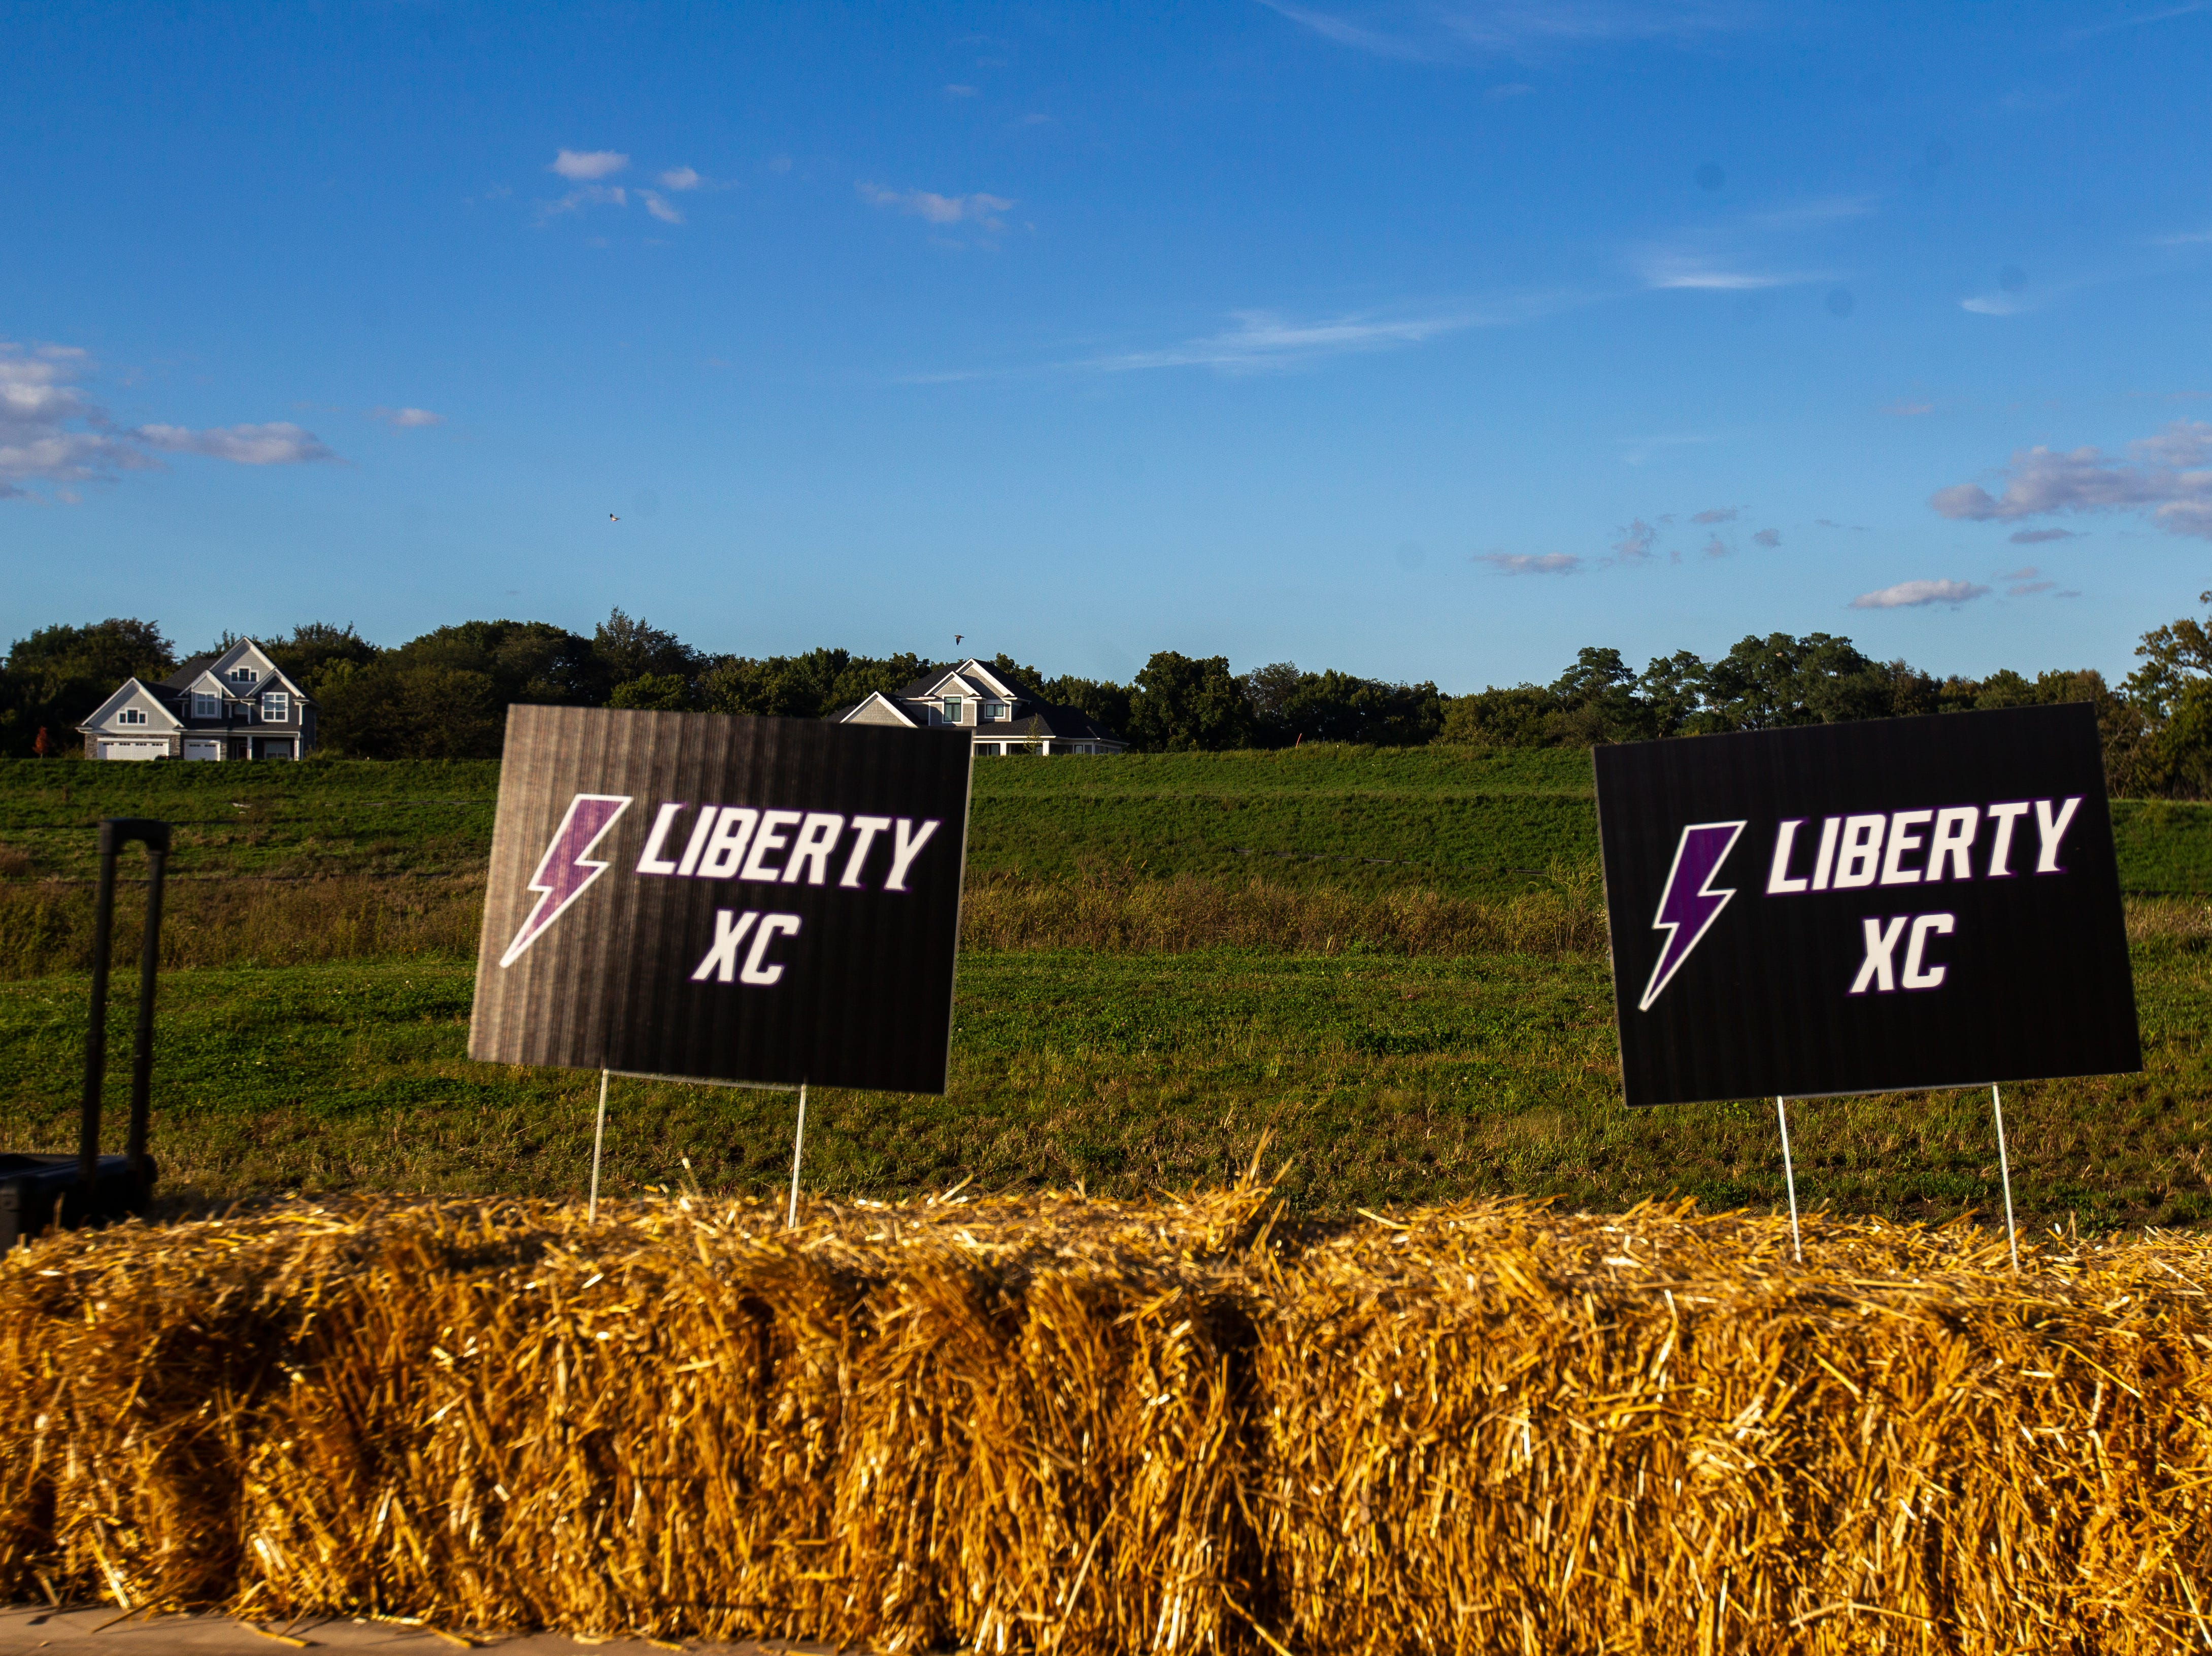 A cross country float is seen before Liberty's homecoming parade on Wednesday, Sept. 26, 2018, in North Liberty, Iowa.